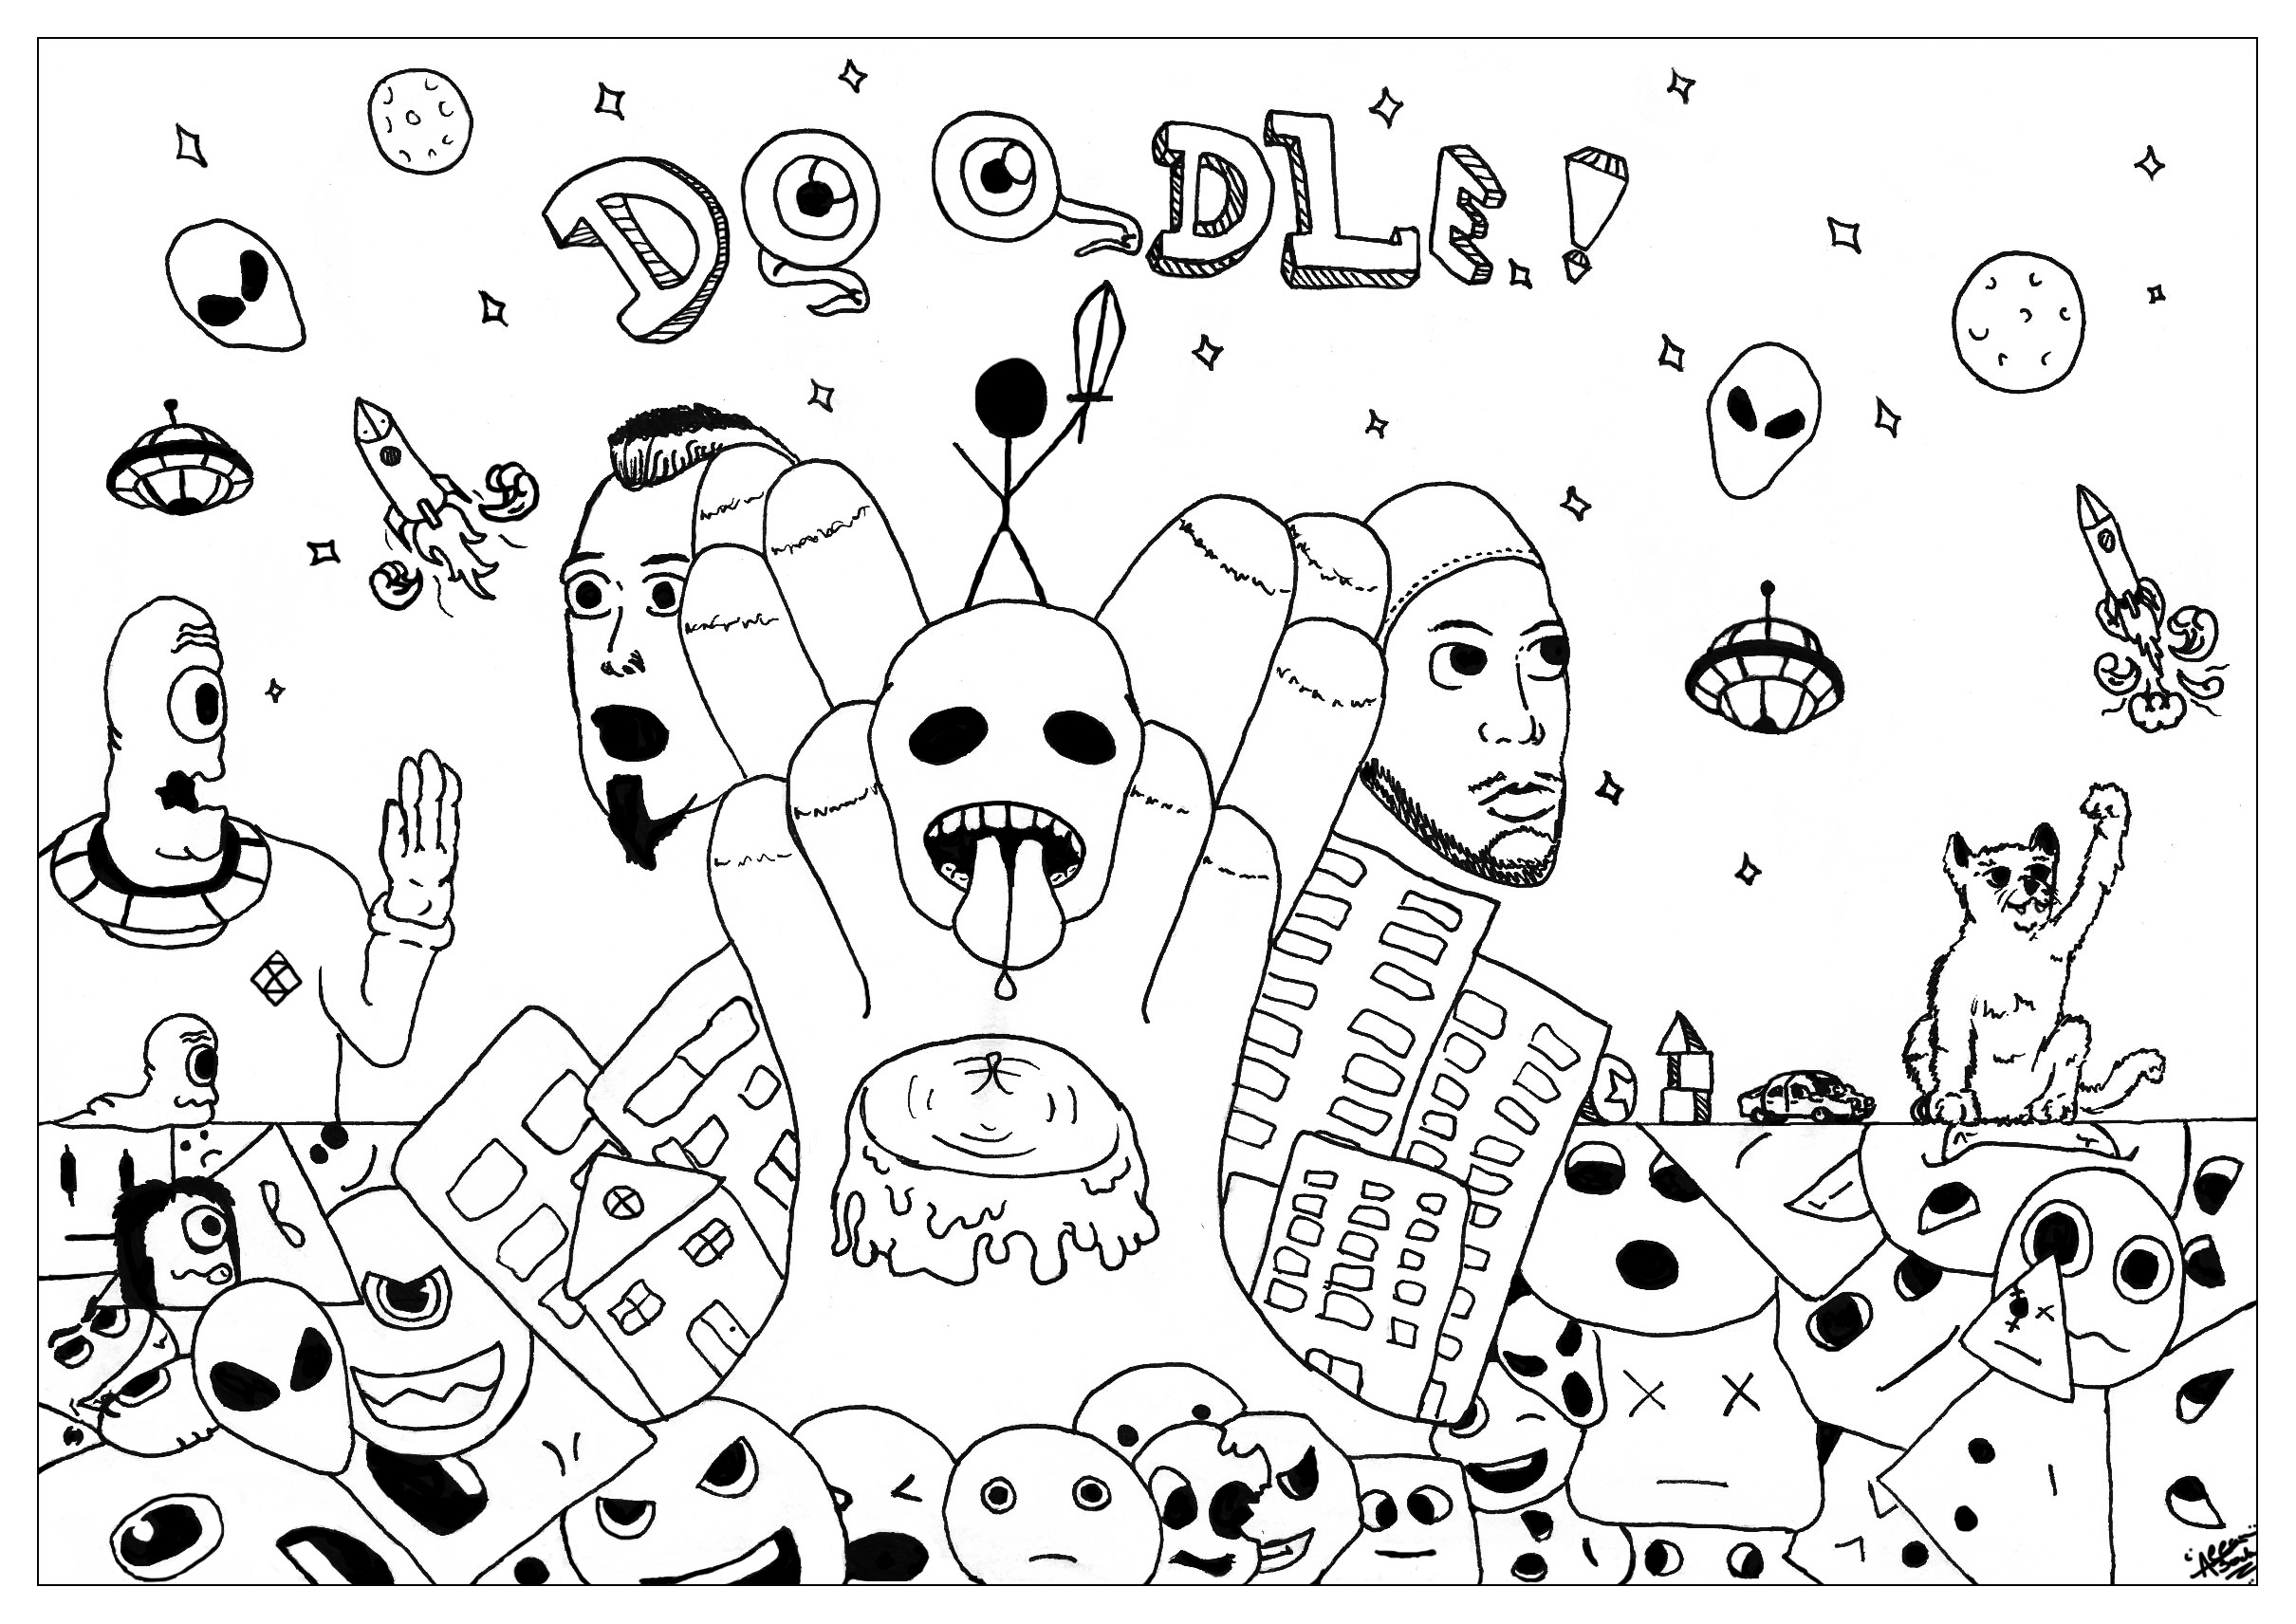 A doodle for our Doodler !